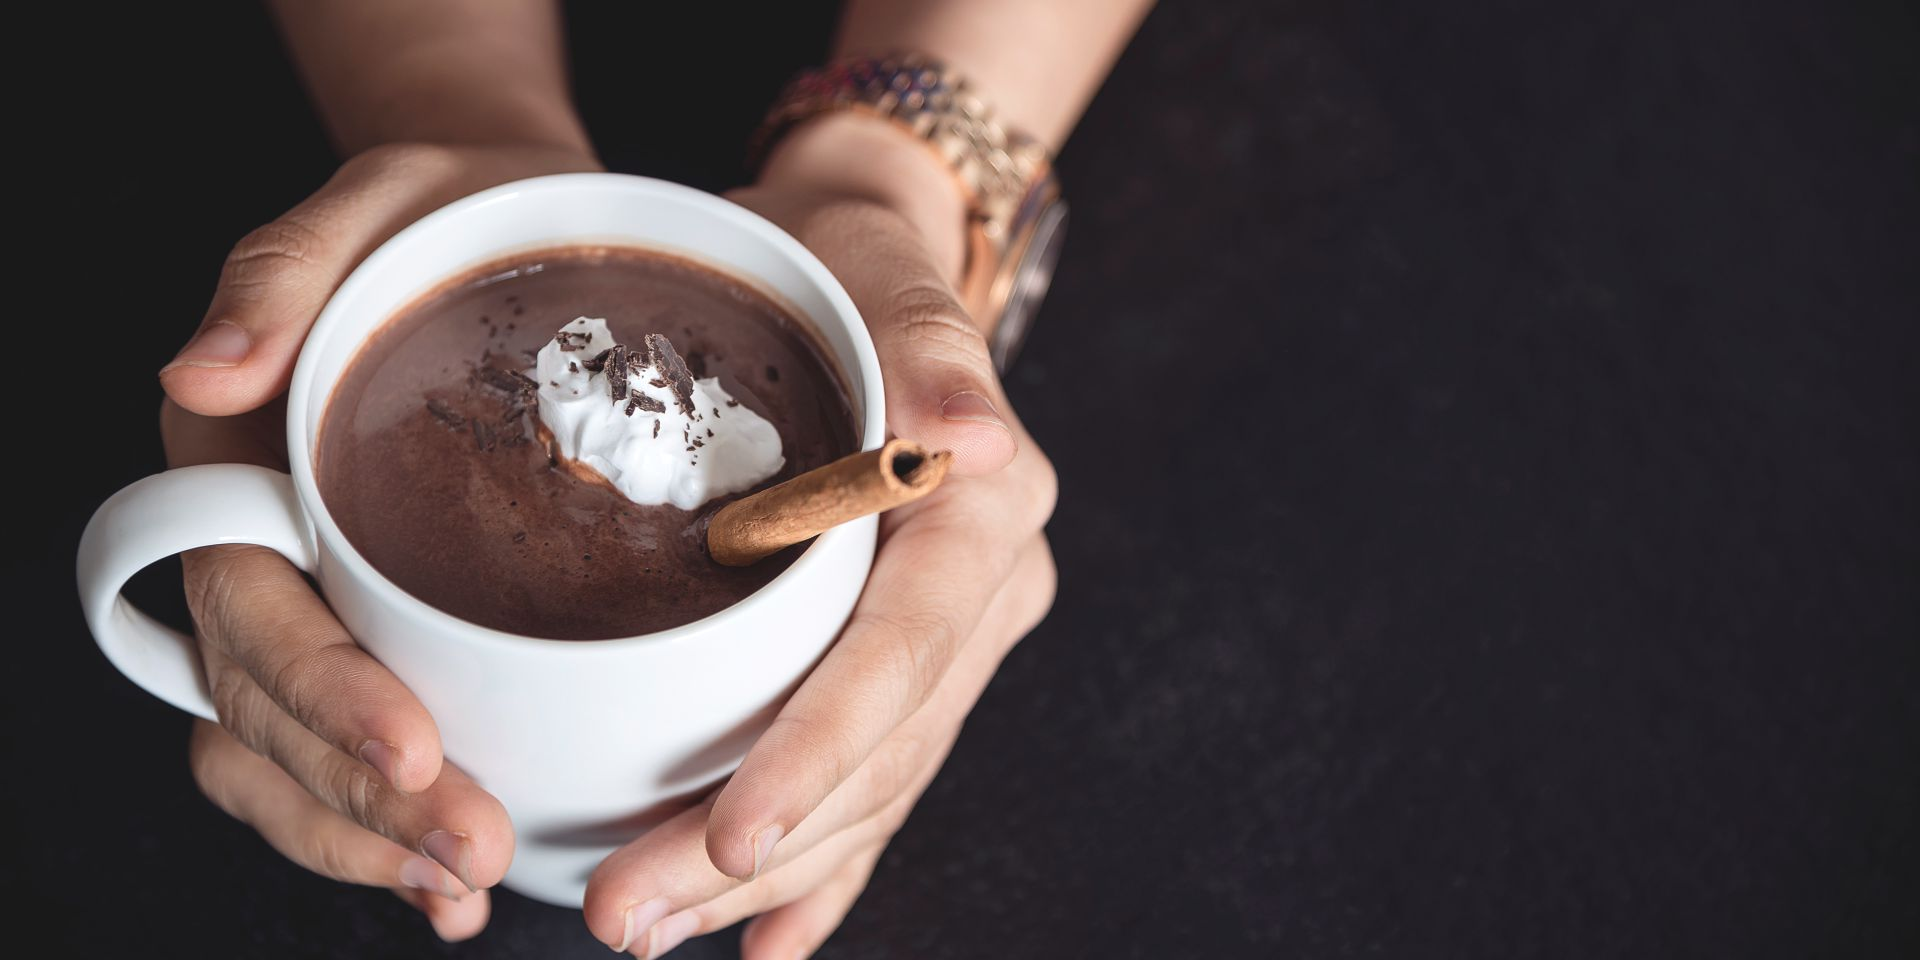 Classic Hot Chocolate - Now dark, european-style hot chocolate in the comforts of your home!